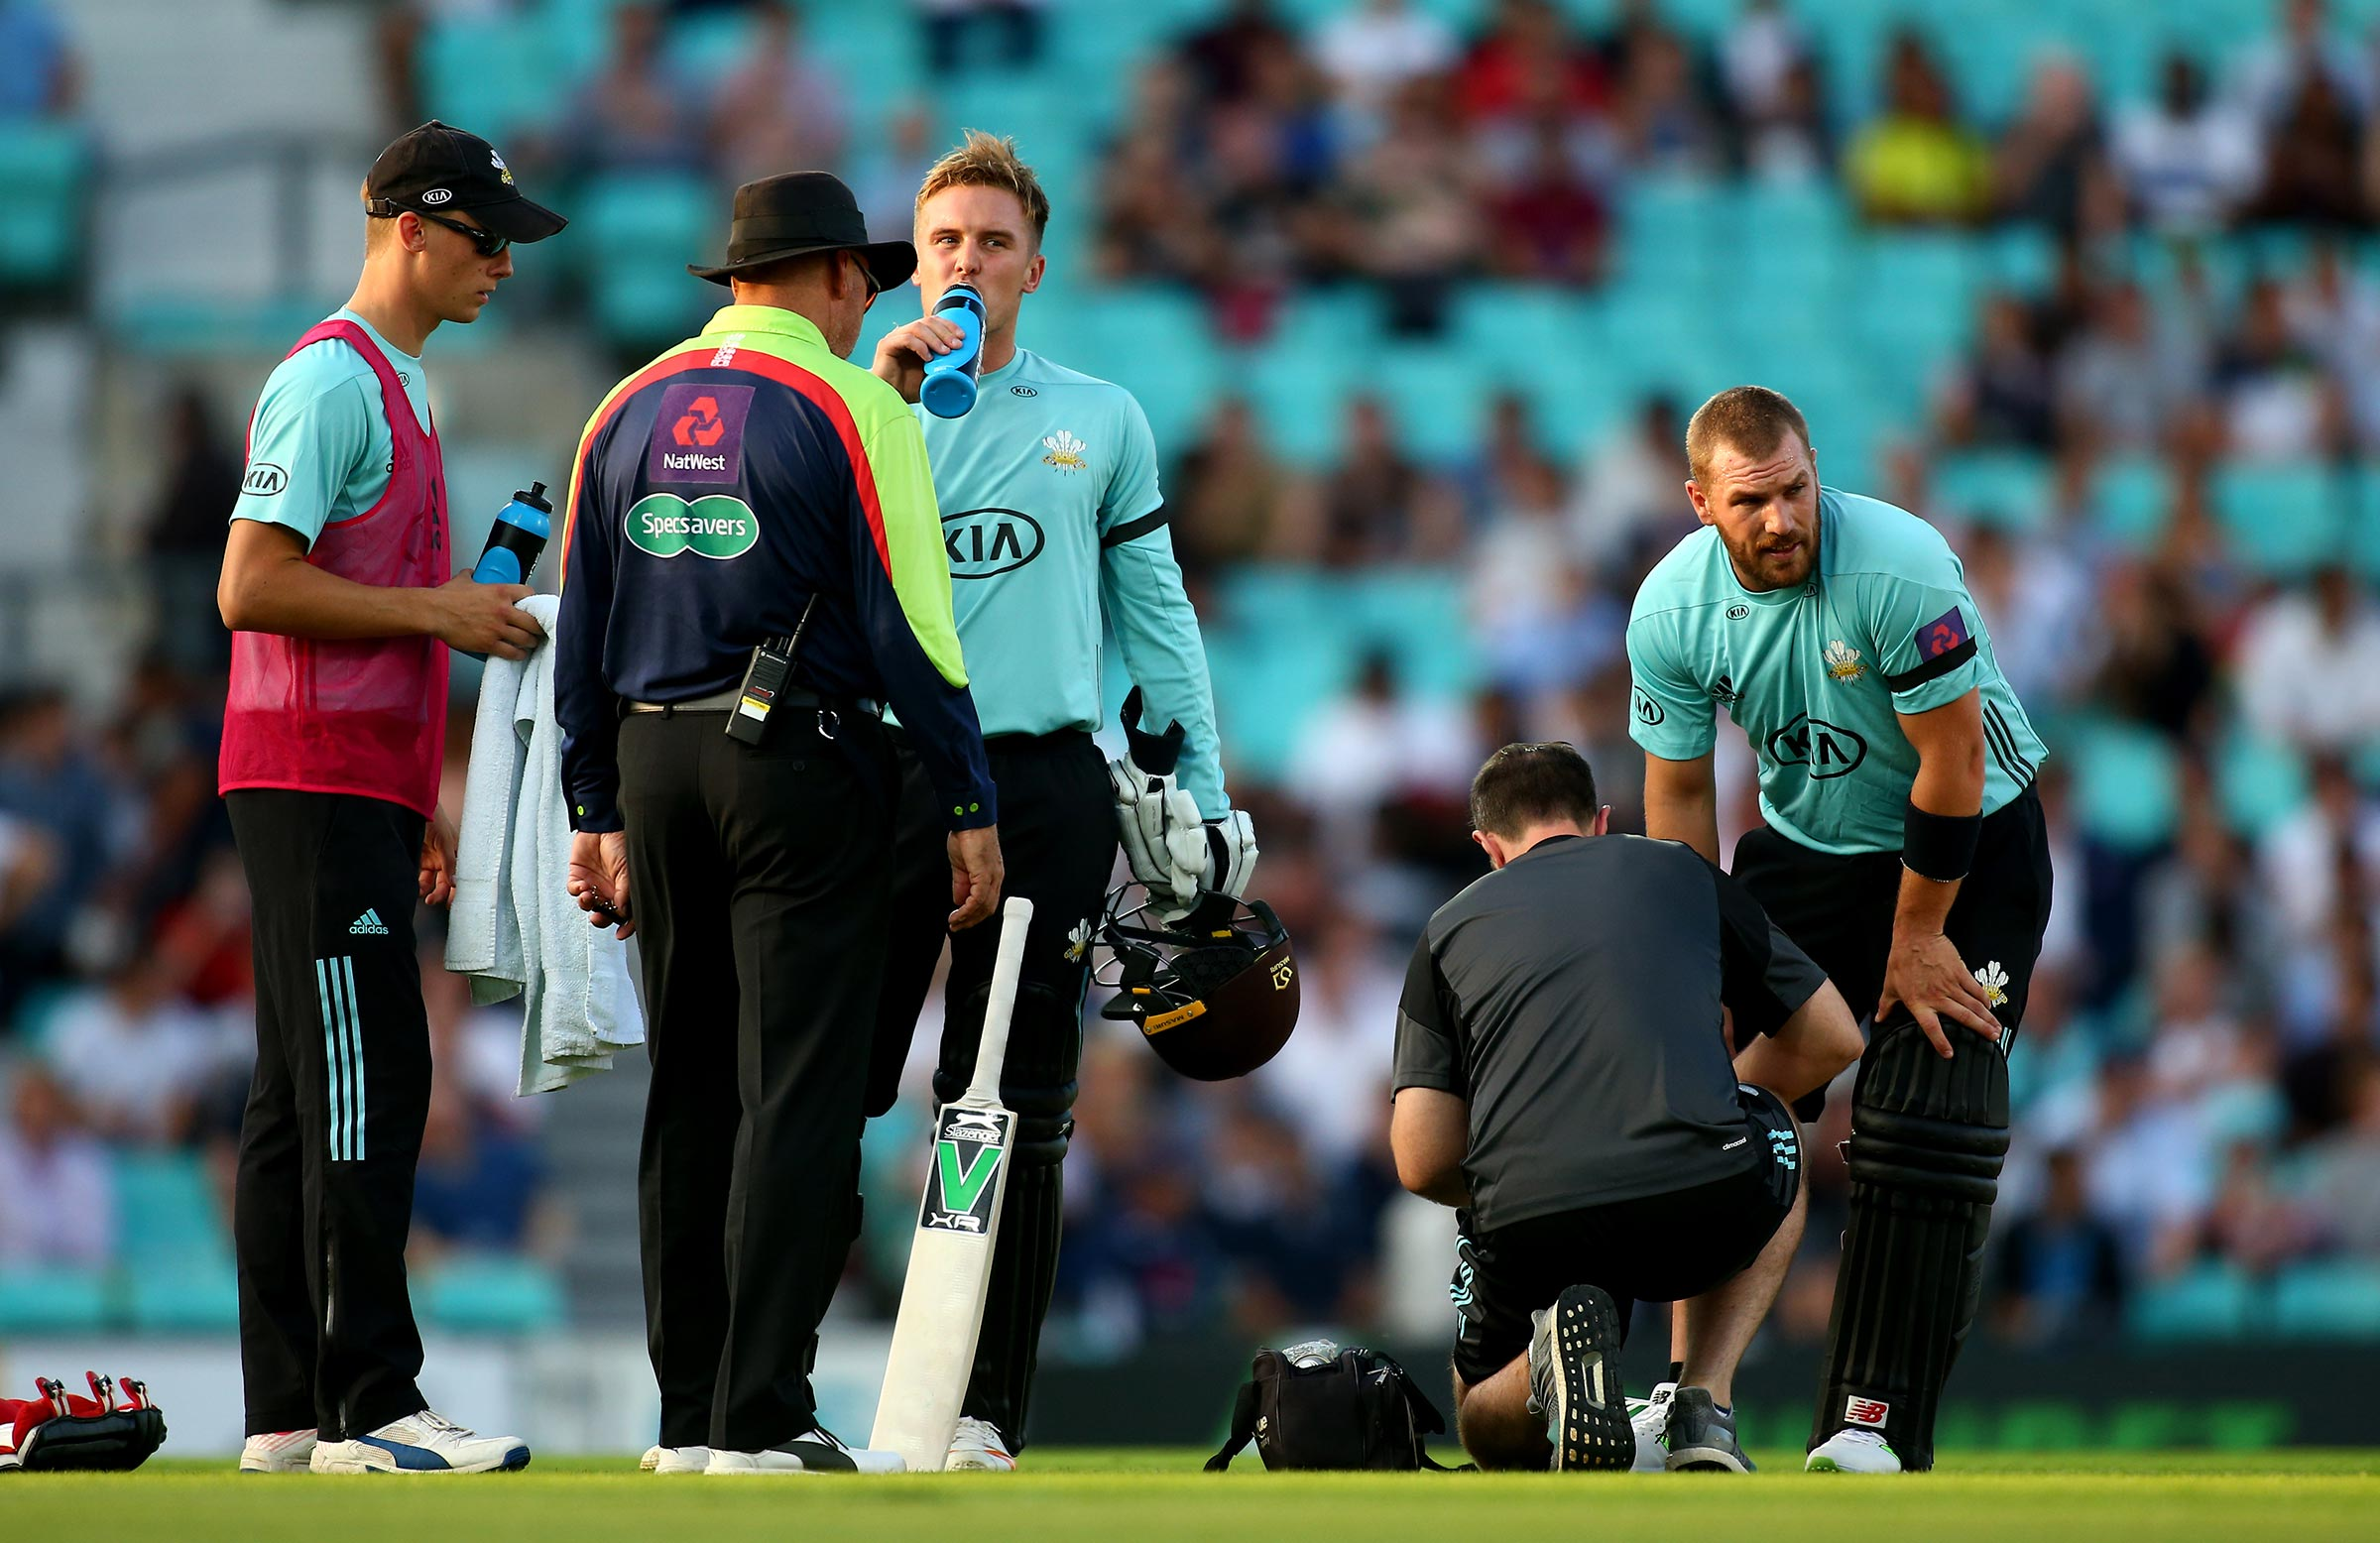 A calf injury restricted Finch // Getty